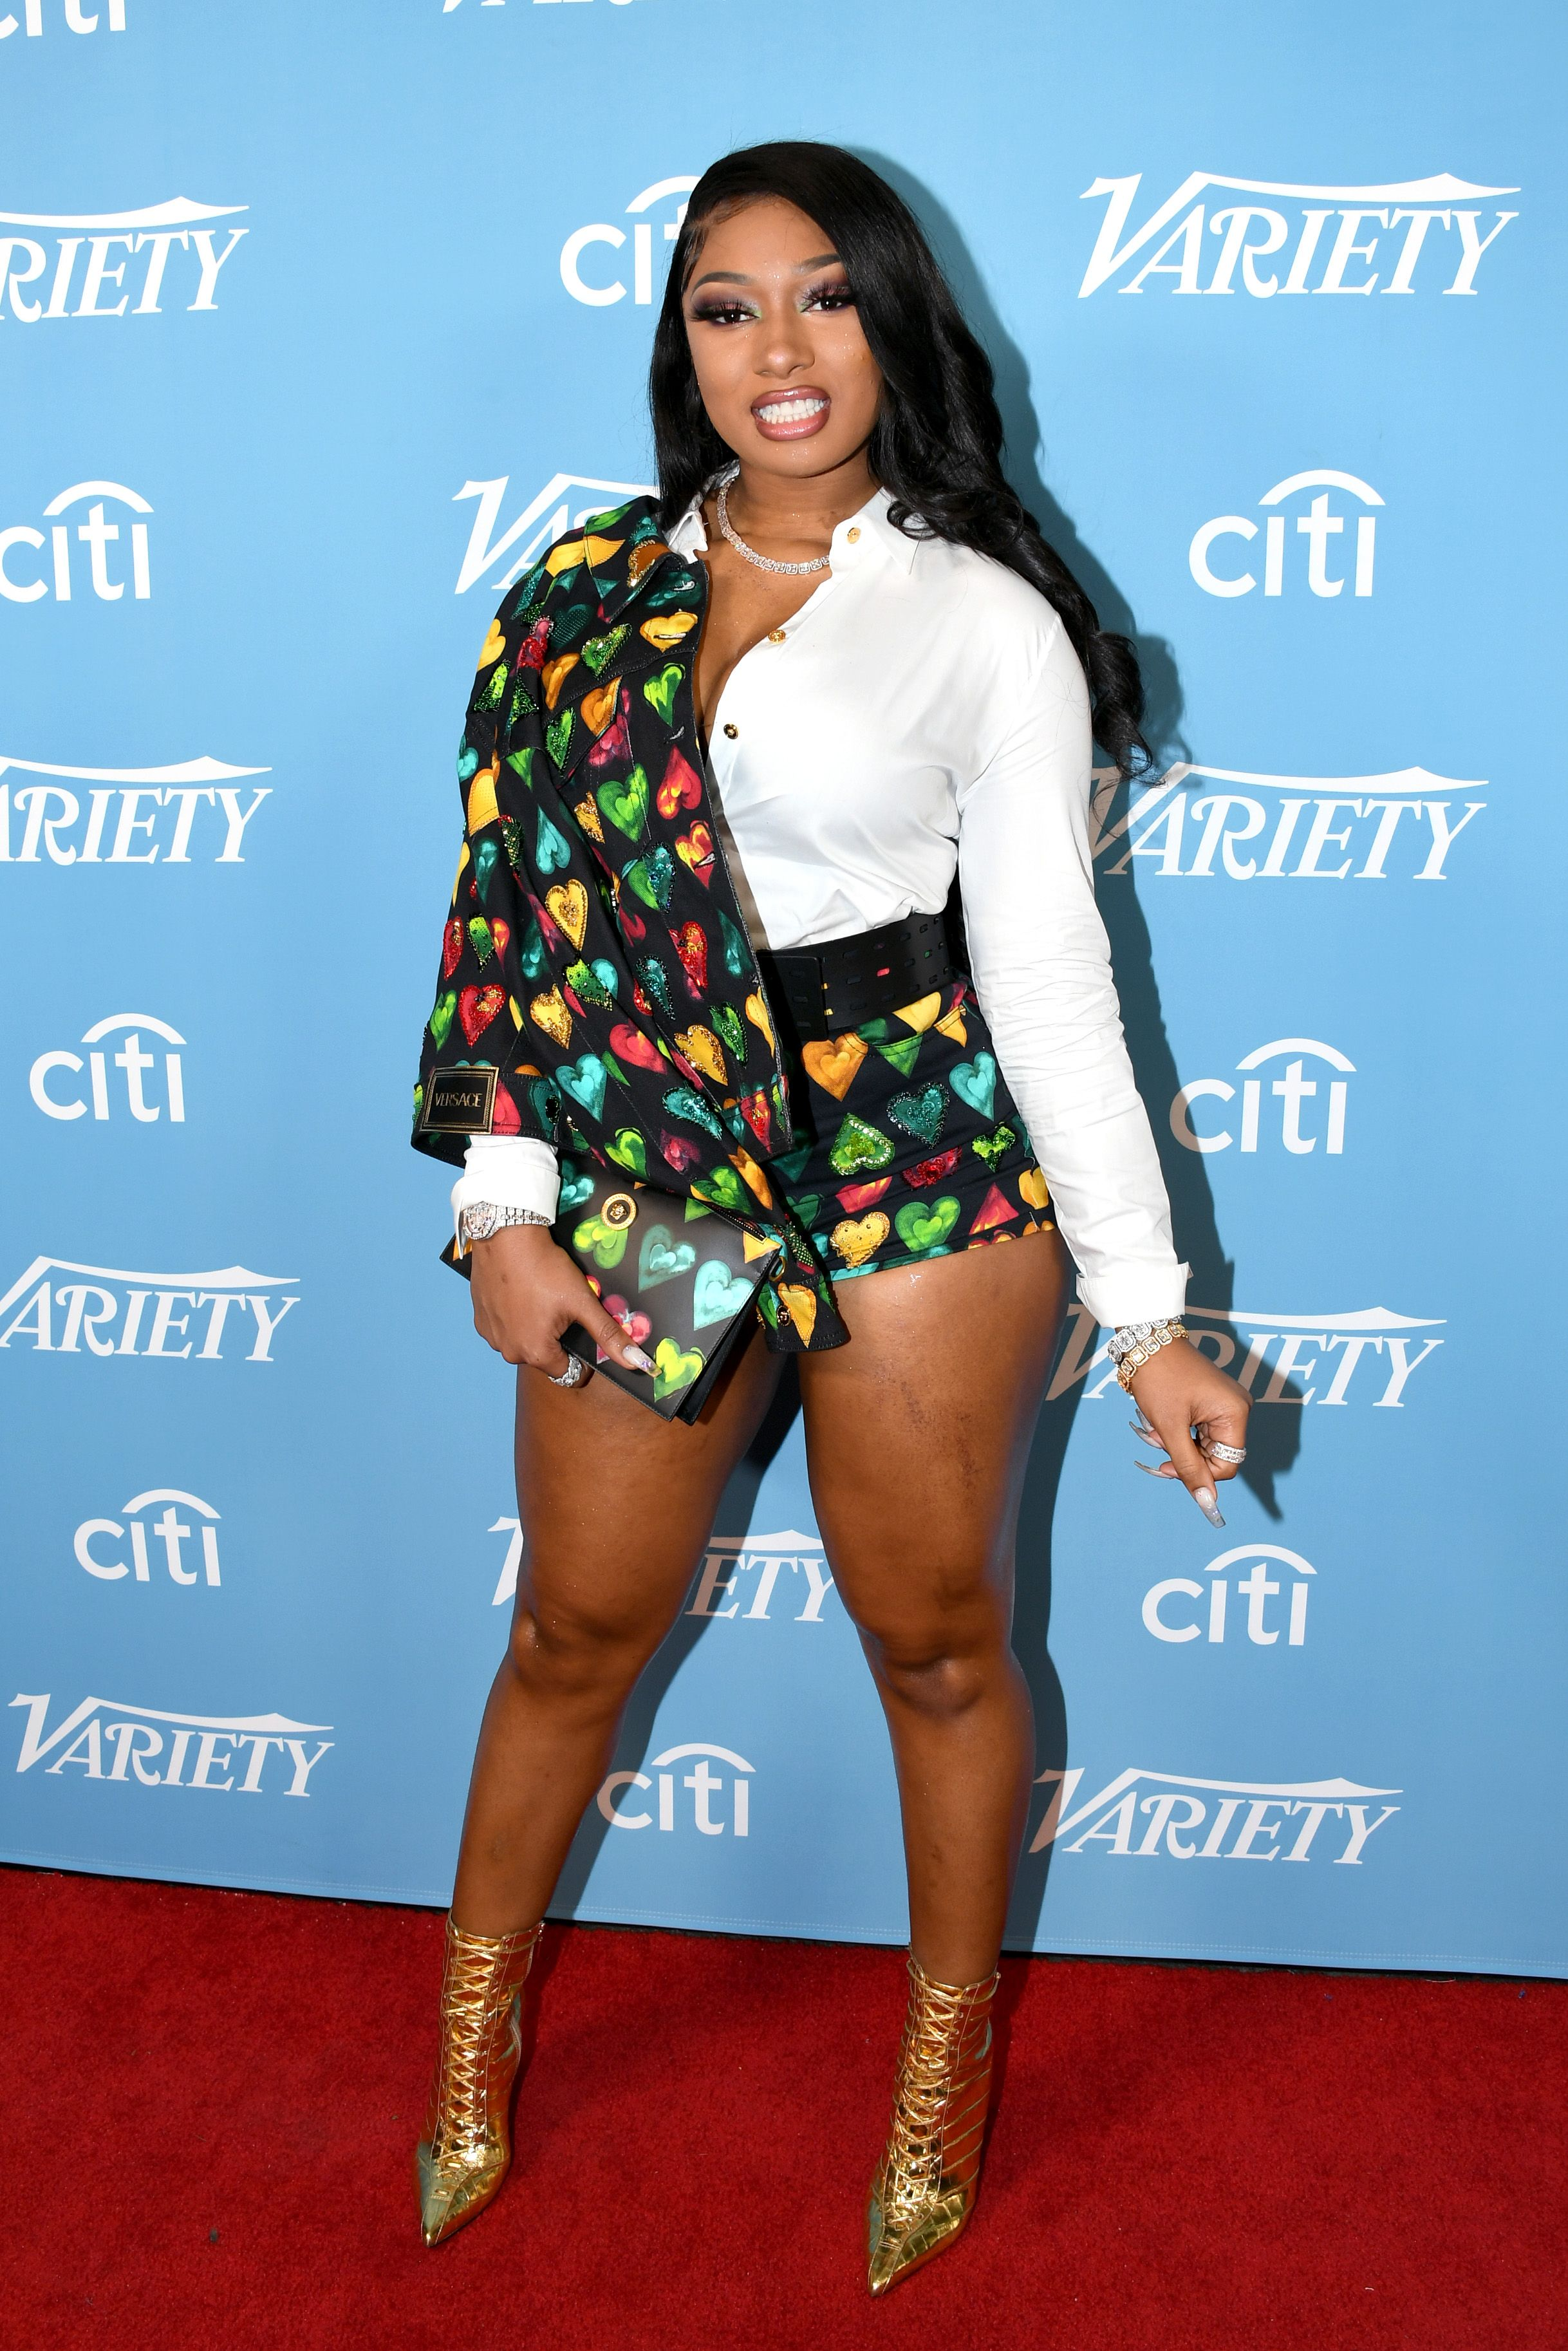 Megan Thee Stallion attends the 2019 Variety's Hitmakers Brunch at Soho House on December 07, 2019 in West Hollywood, California. | Source: Getty Images